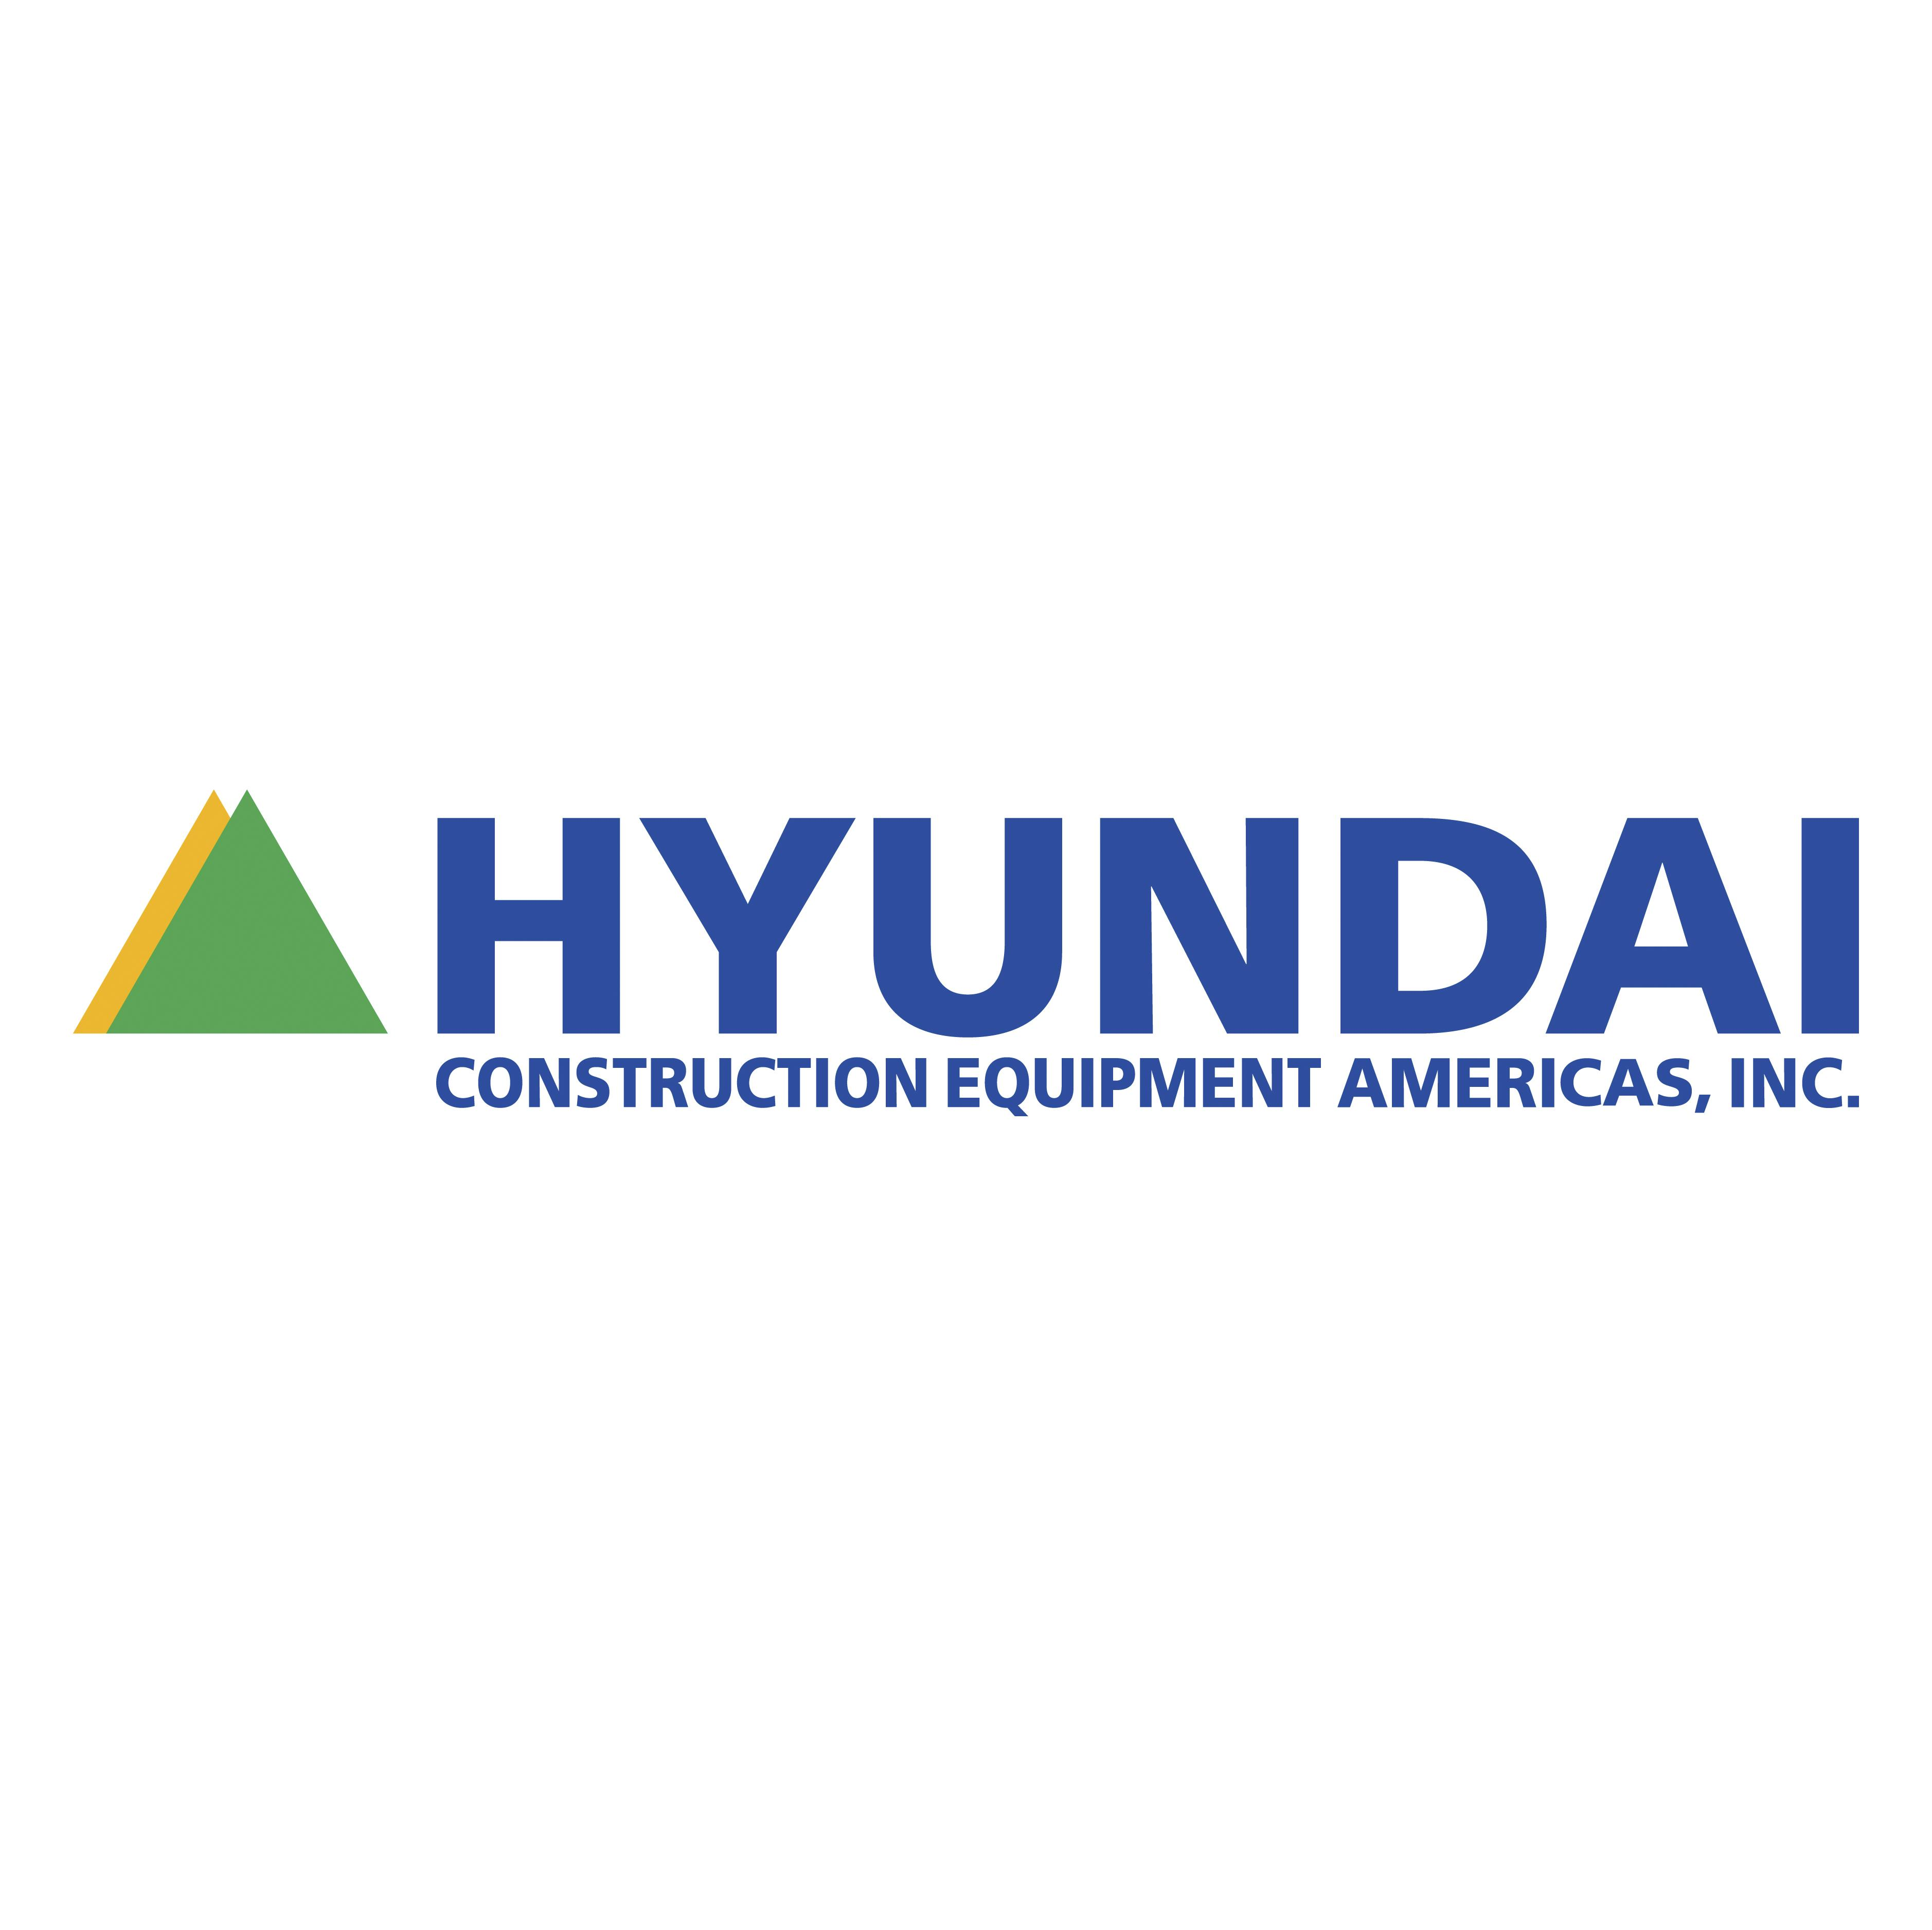 Hyundai Construction Equip copy